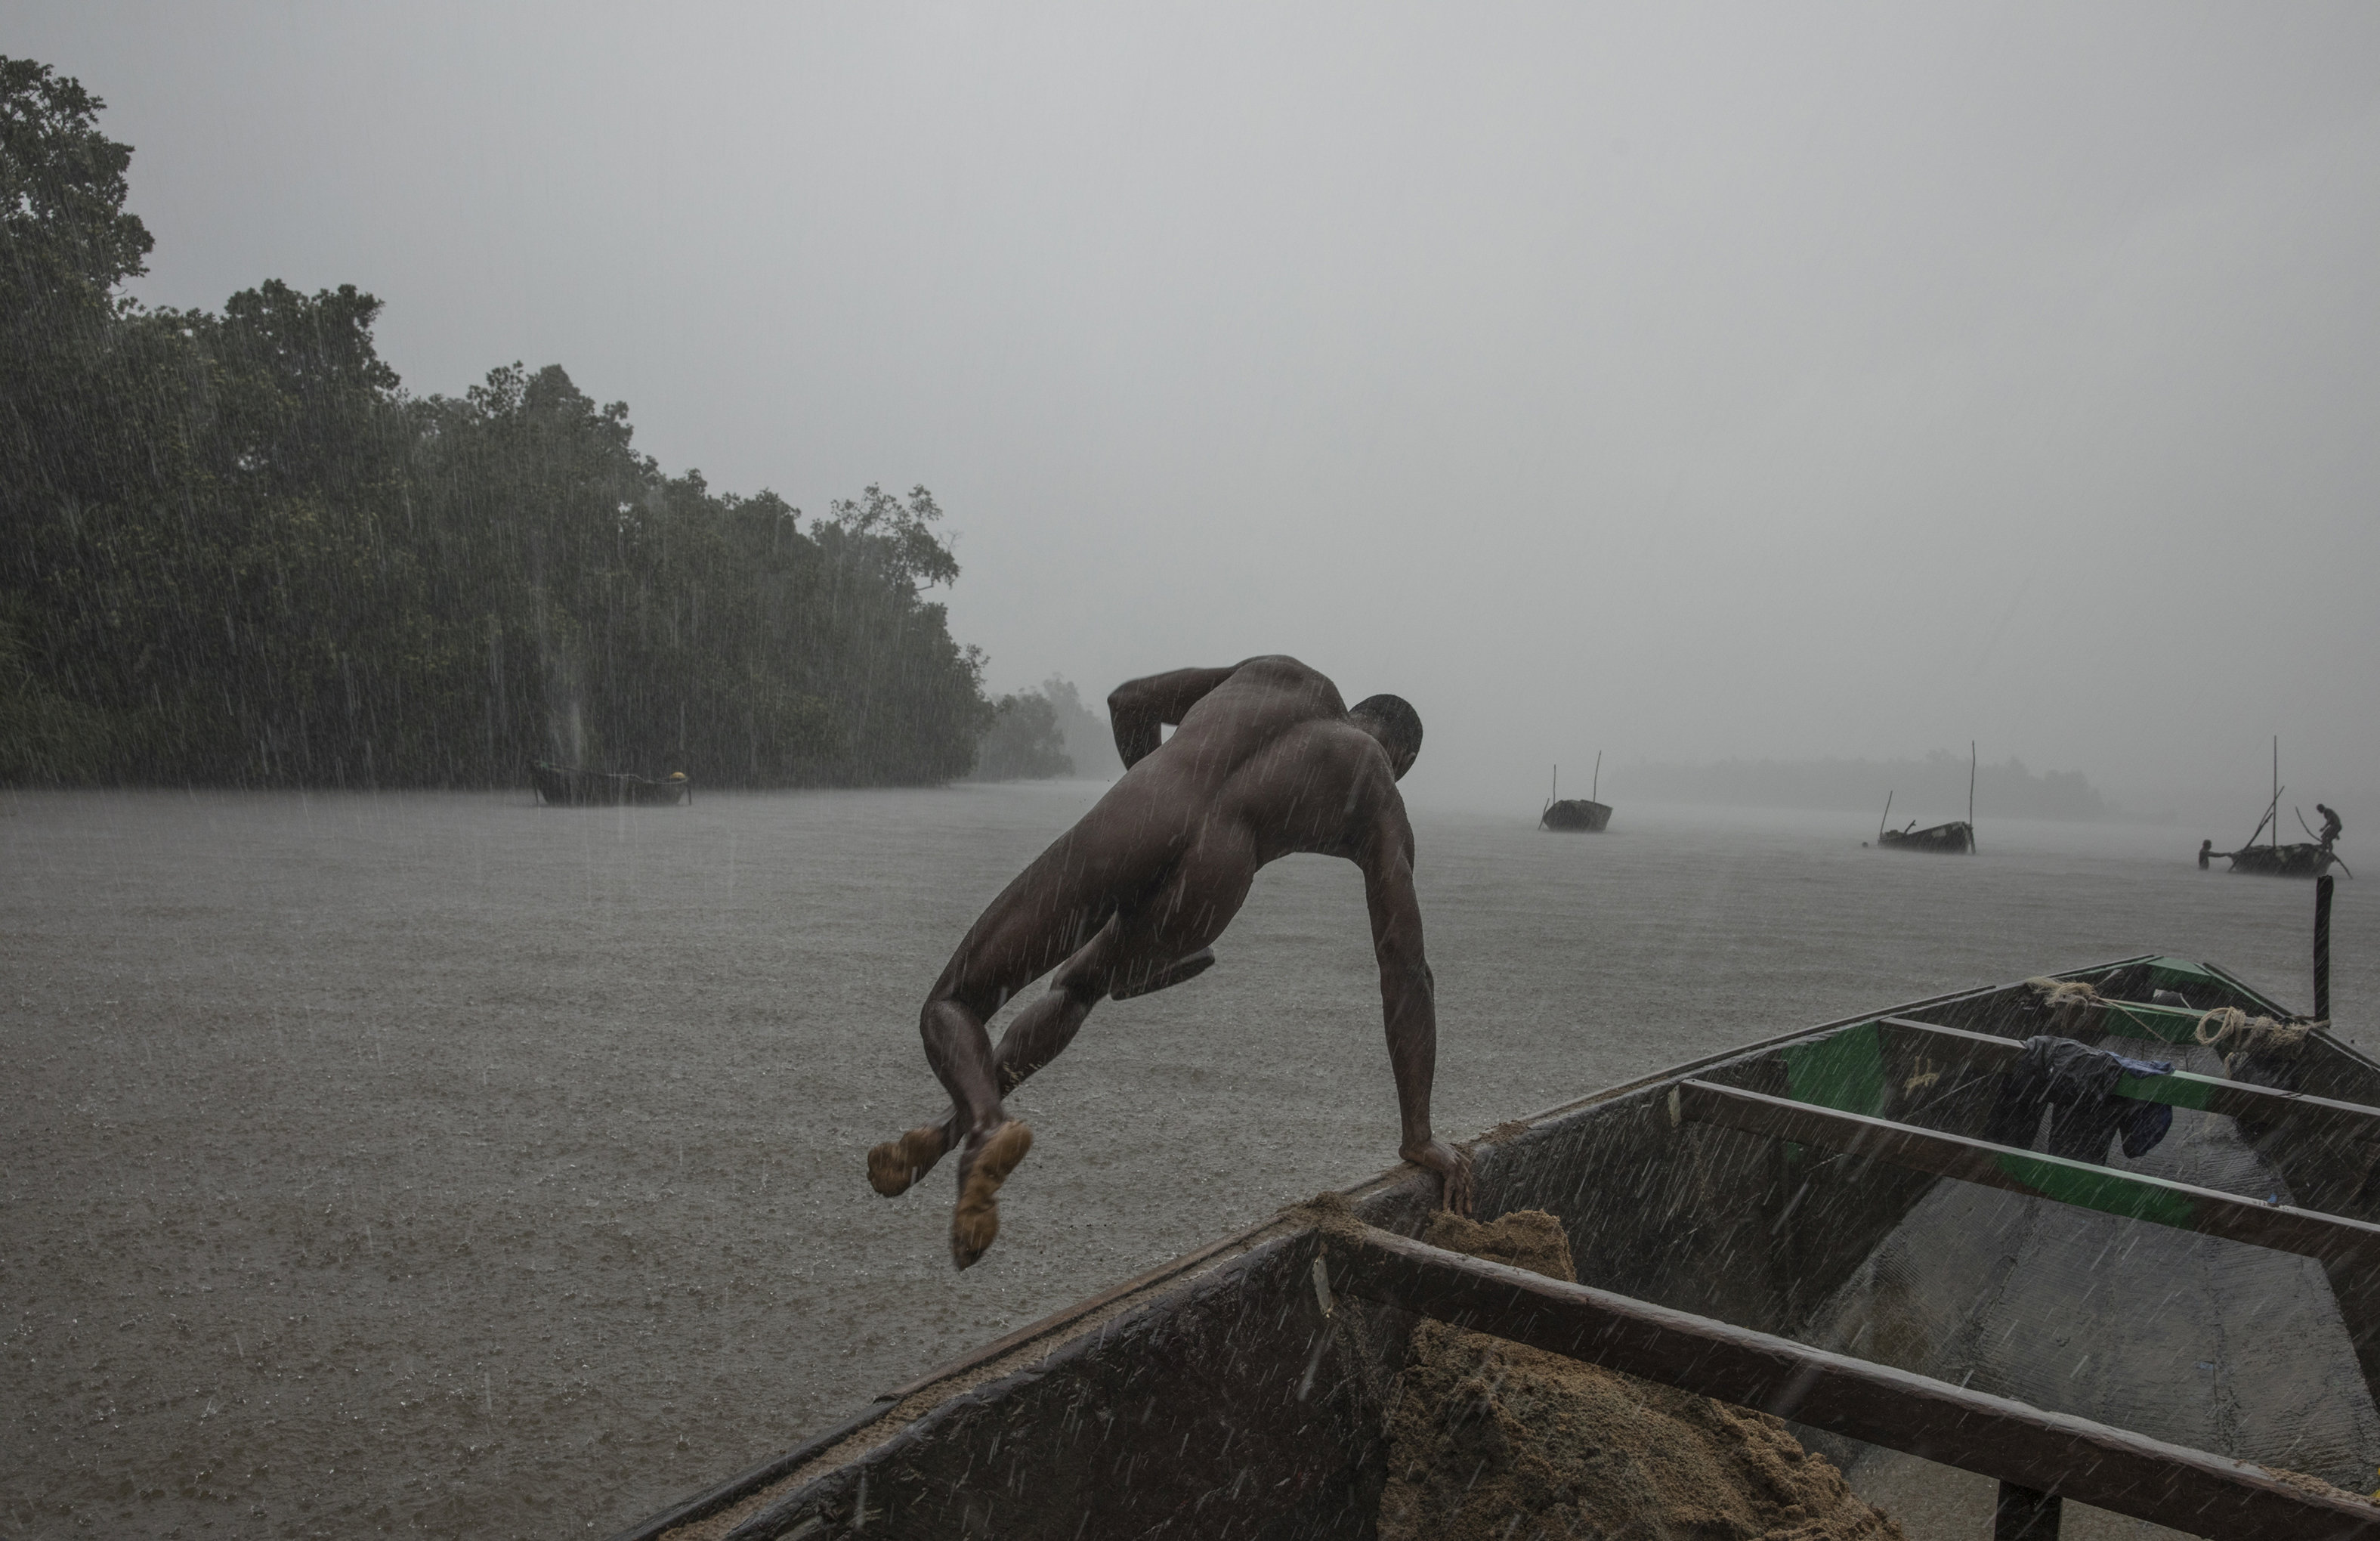 Some of the divers can't even swim properly and risk death to collect the sand. Credit: SWNS